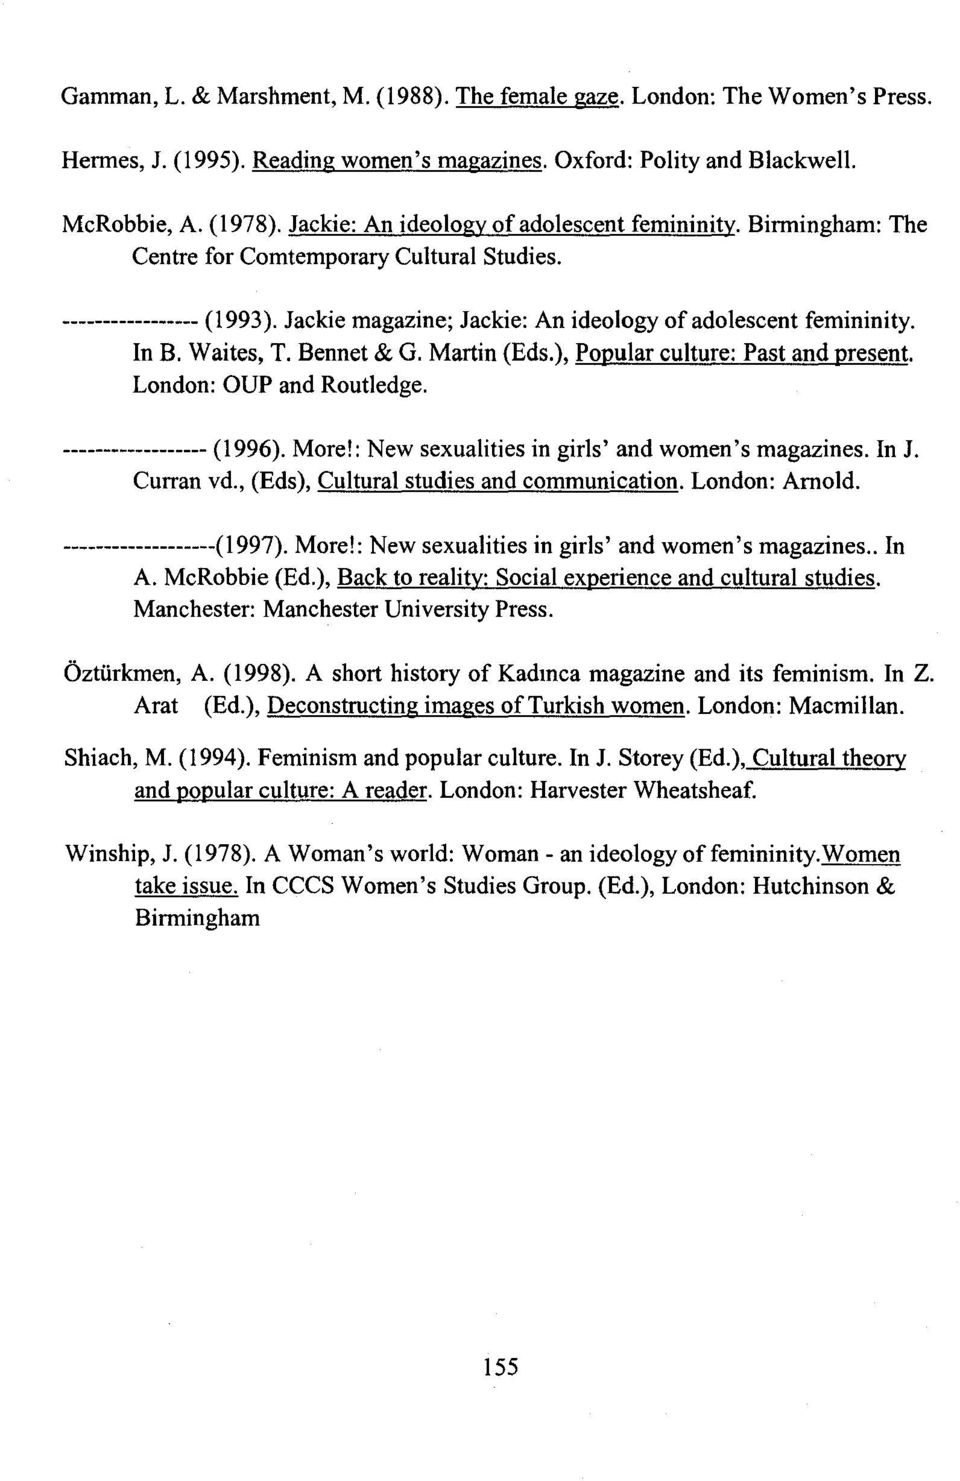 Waites, T. Bennet & G. Martin (Eds.), Popular culture: Past and preseni. London: OUP and Routledge. ------------------ (1996). More!: New sexualities in girls' and women's magazines. In J. Curran vd.